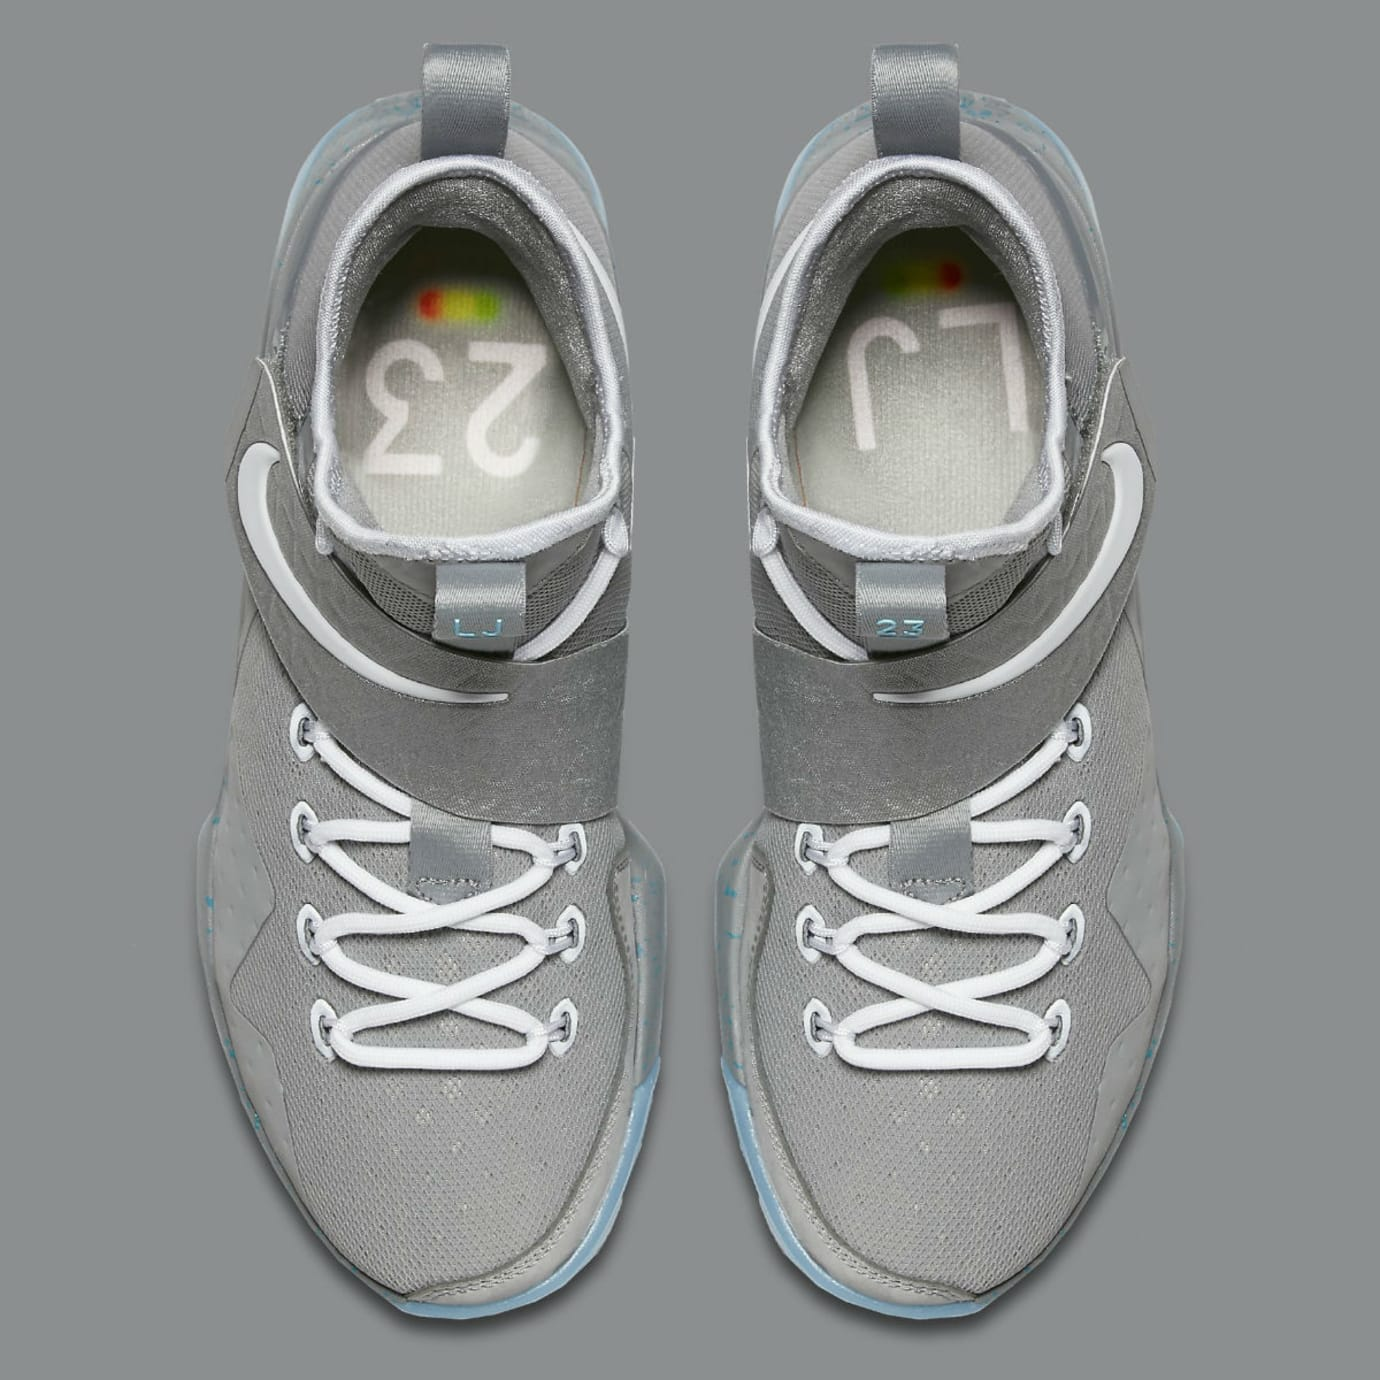 Nike LeBron 14 Mag McFly Release Date Top 852405-005